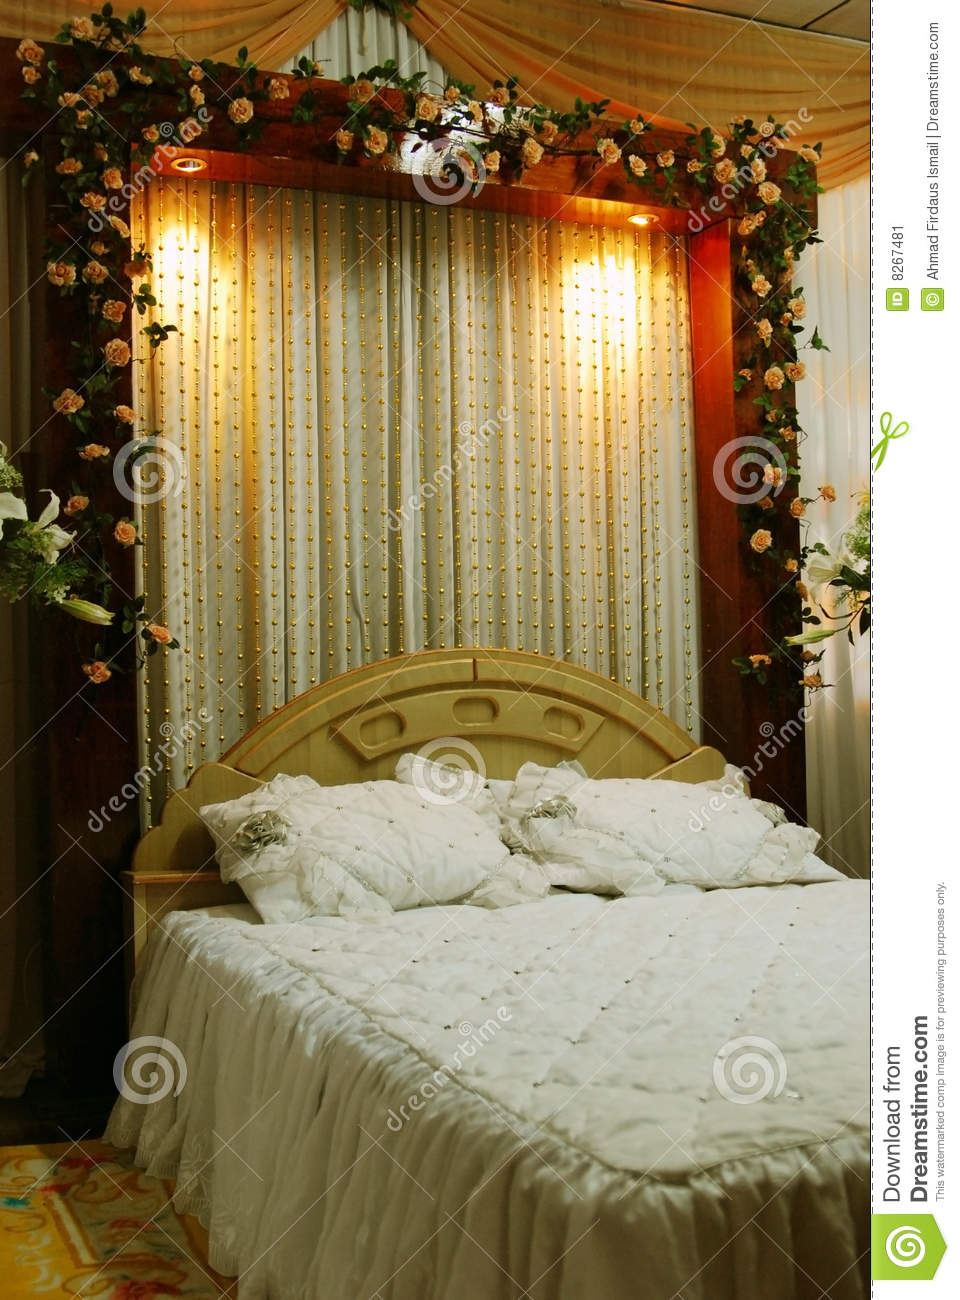 wedding bed decoration stock image image of banquet